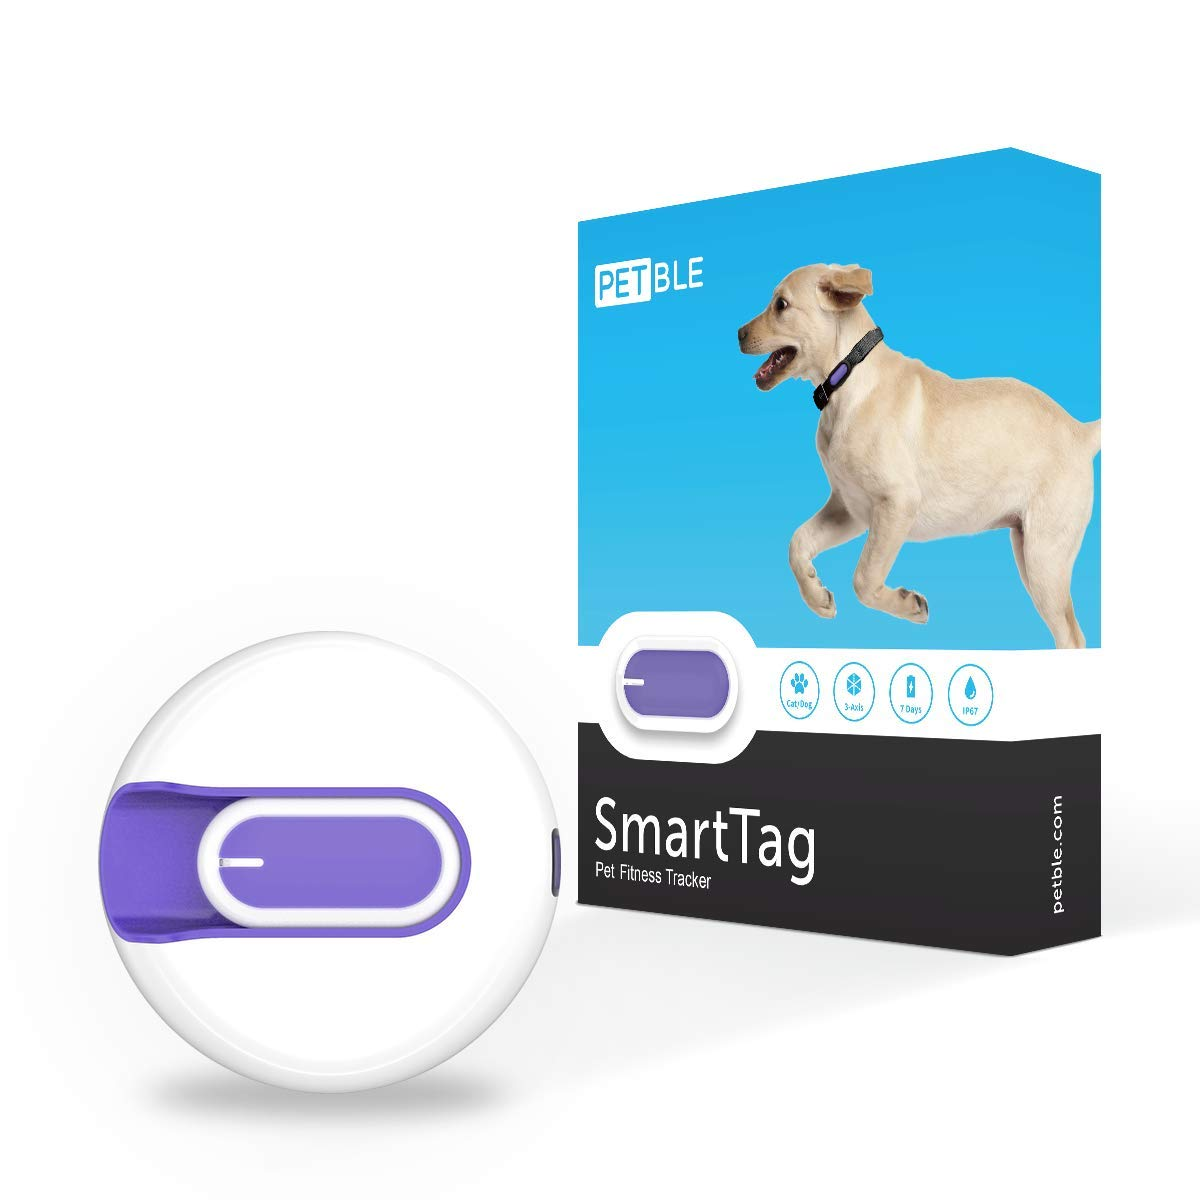 PETBLE Dog Cat Pet Smart Tag Tracker - Portable Bluetooth Wireless 4.0 Lightweight, Waterproof, Compatible with Multiple Smart Devices 24/7 Activity Monitor Pet Health Tracker for IOS Android (Yellow) by PETBLE